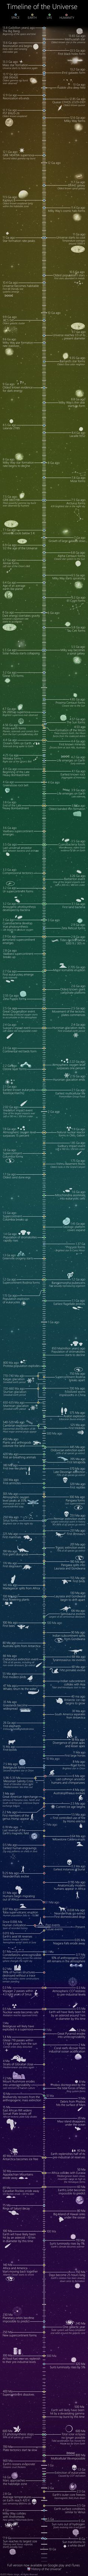 Halcyon Maps | Timeline of the Universe